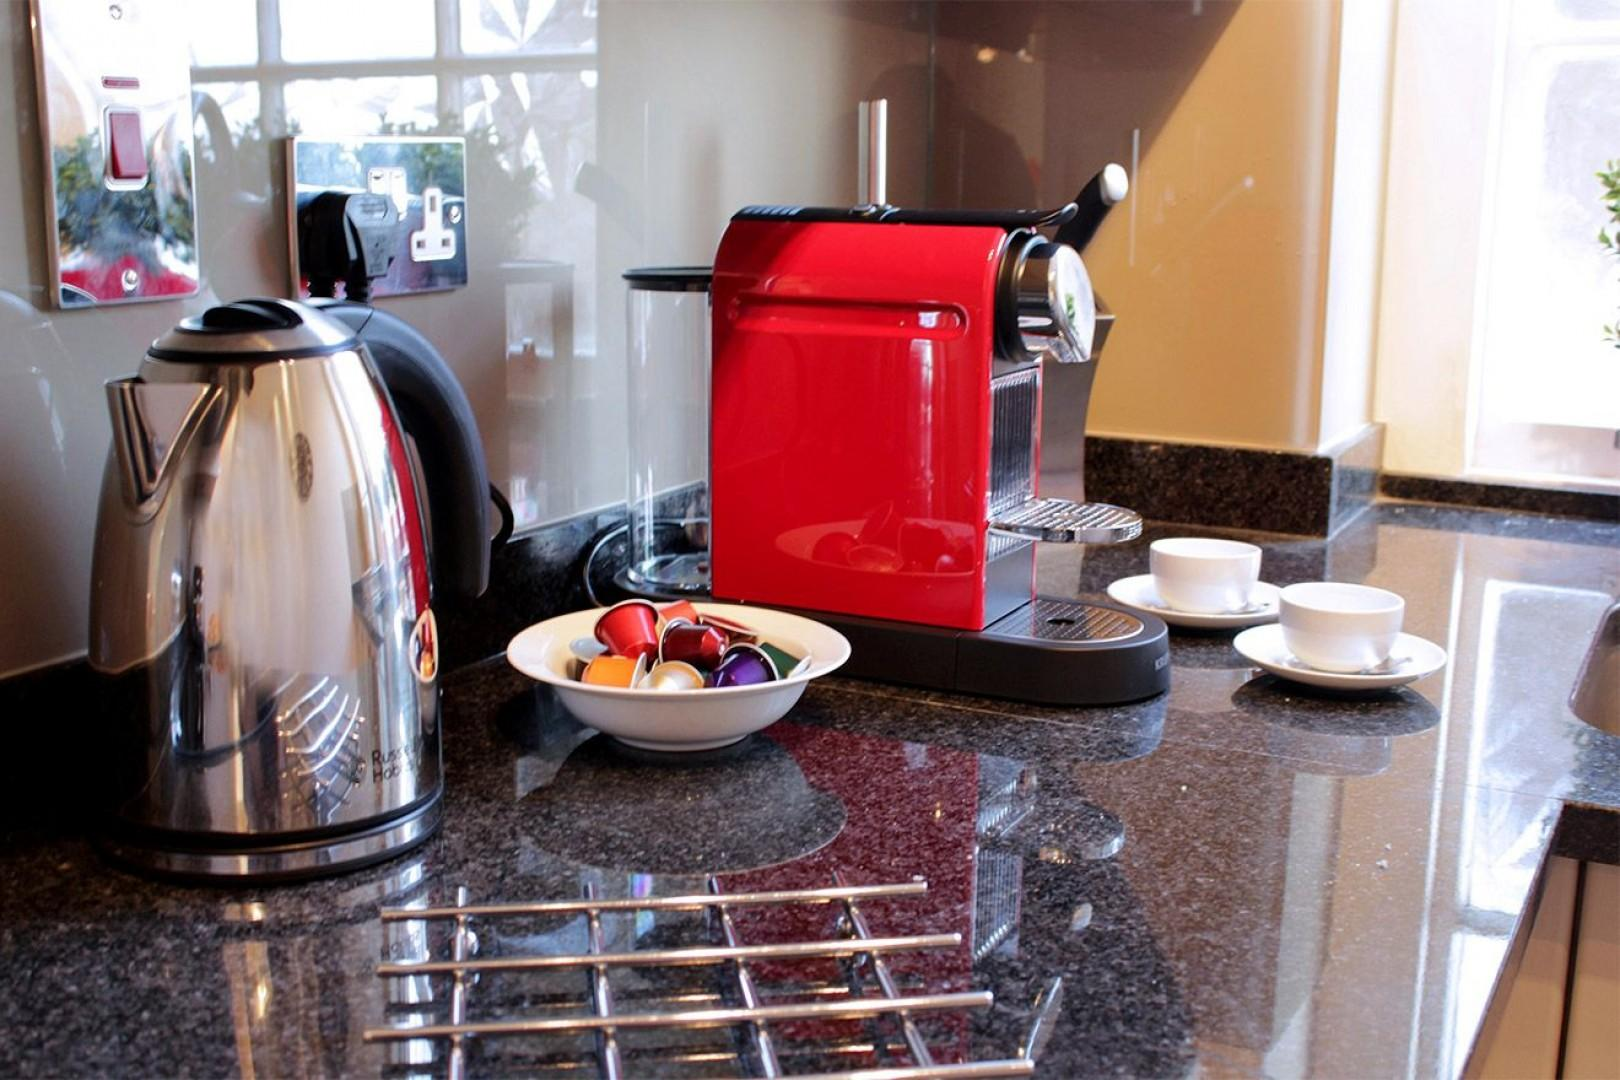 Make coffee or tea to start your day in London